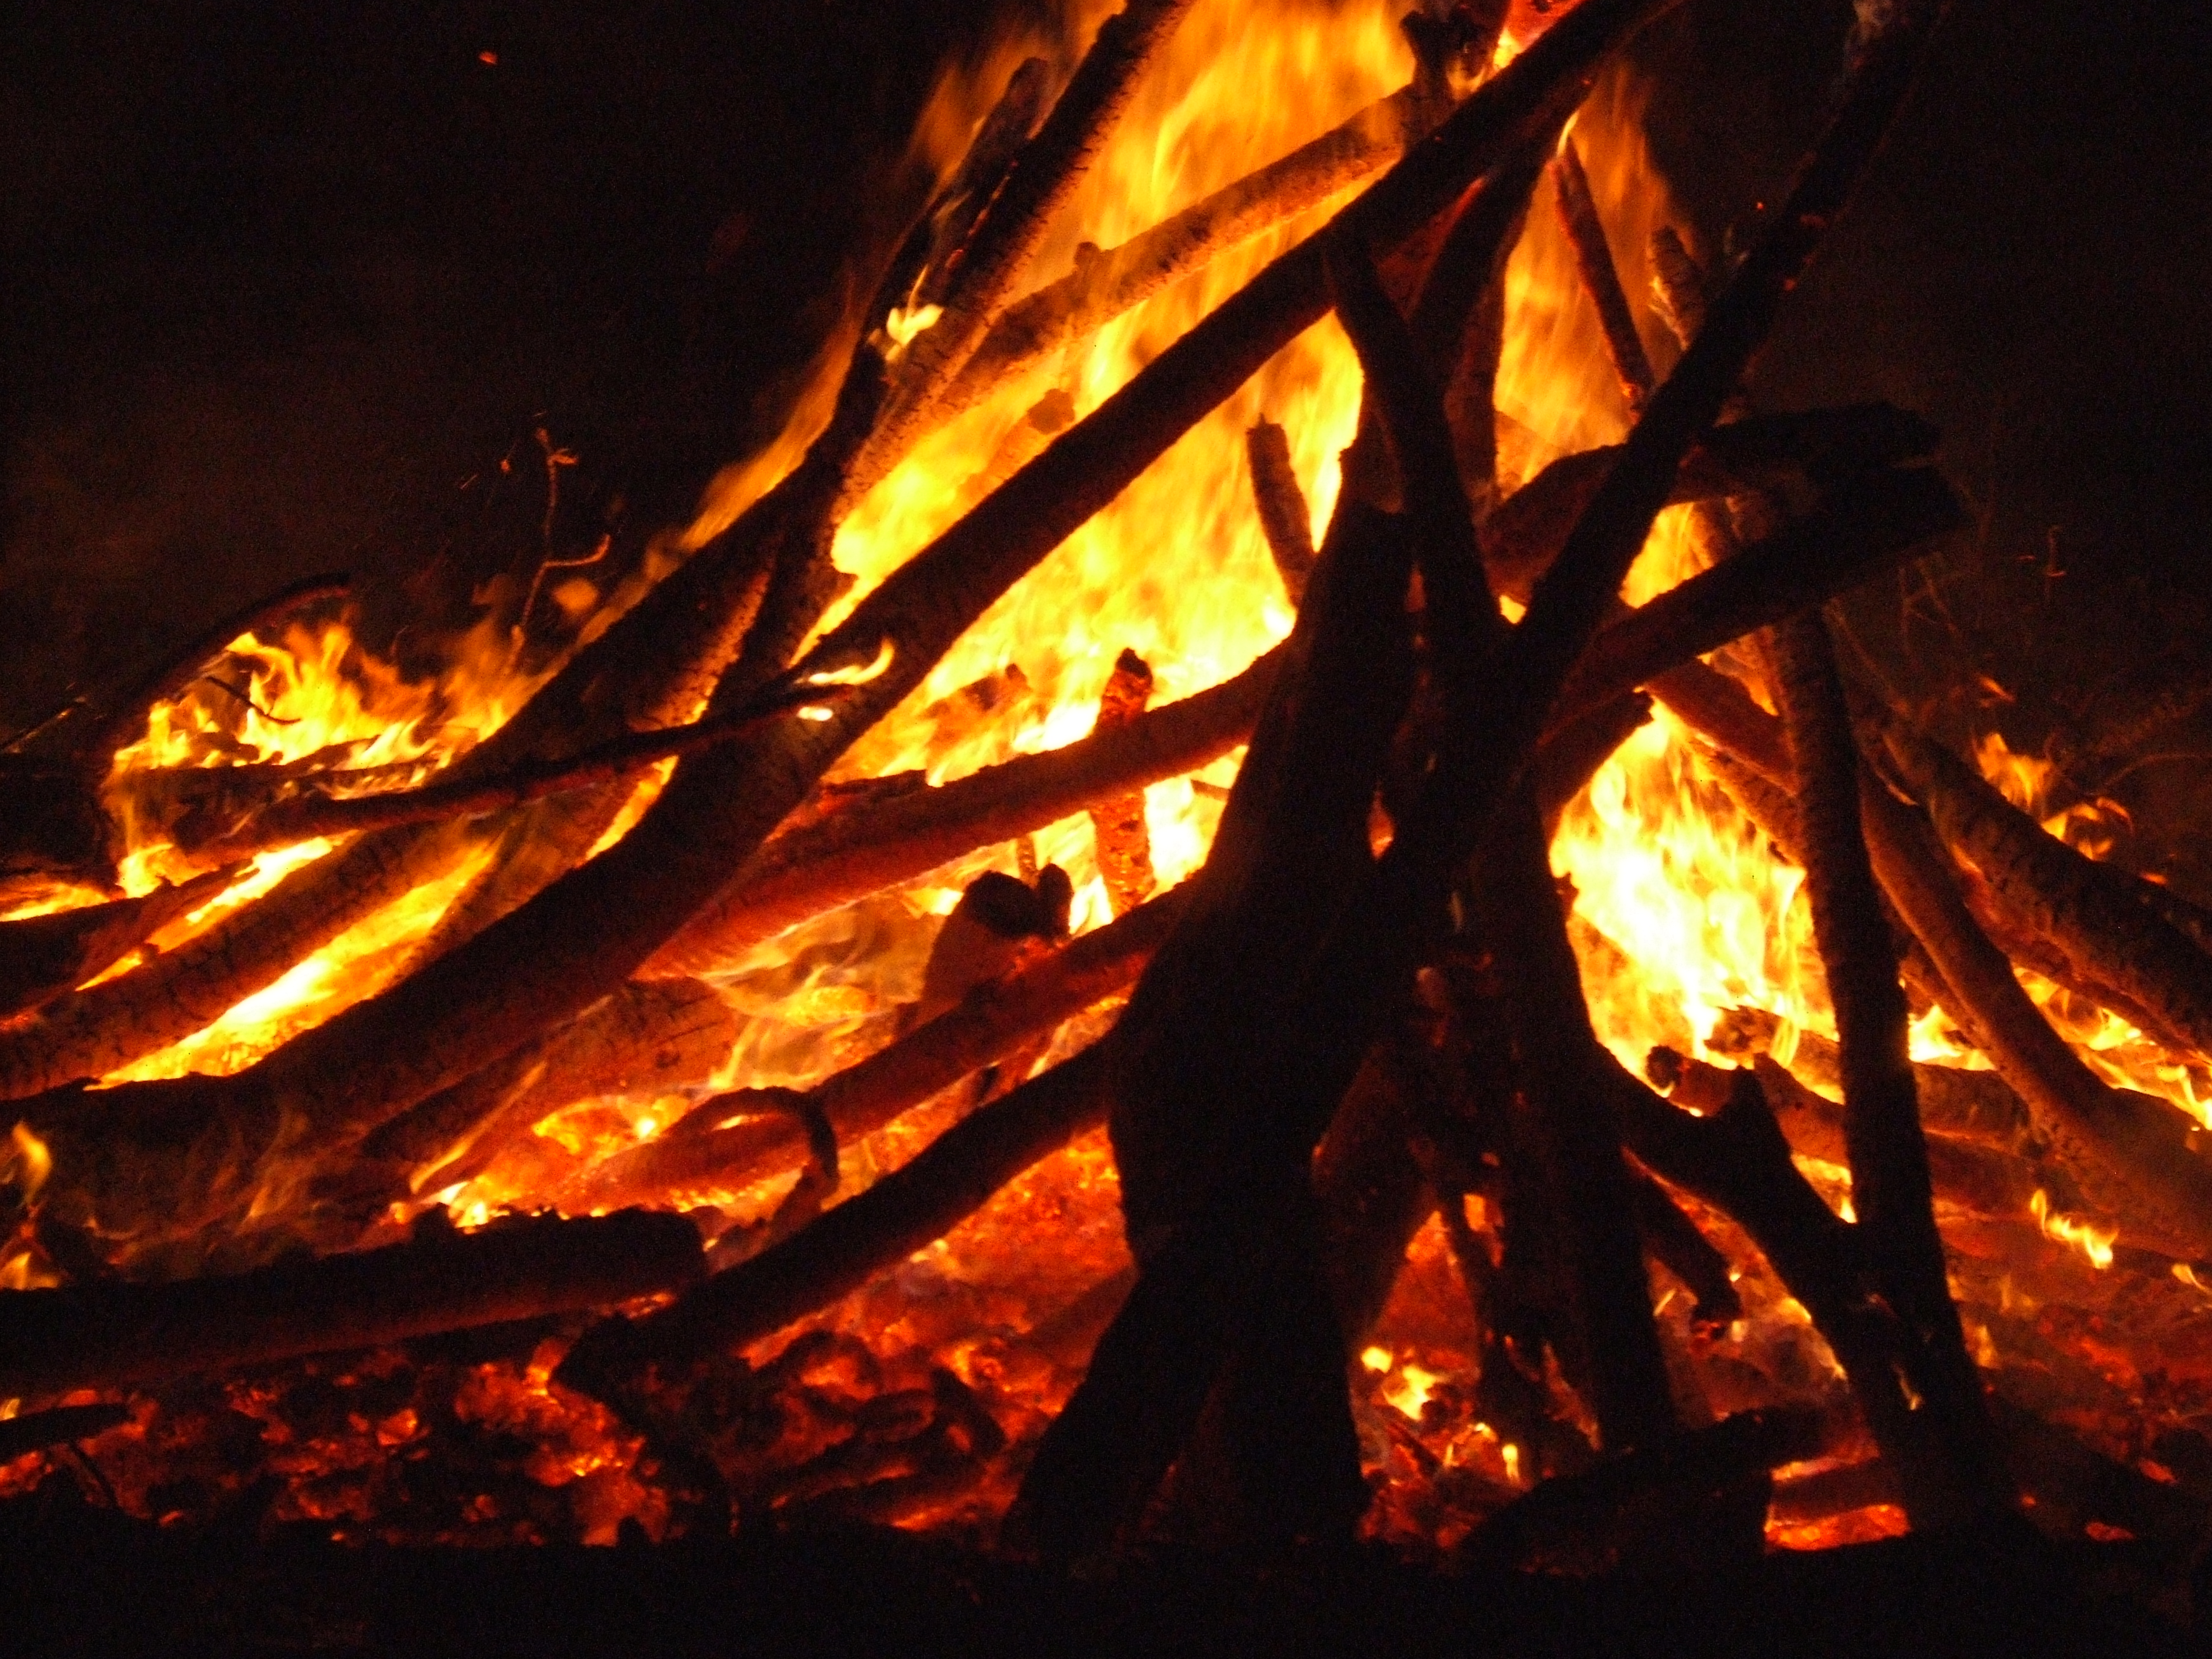 Guy Fawkes Day or Bonfire Night